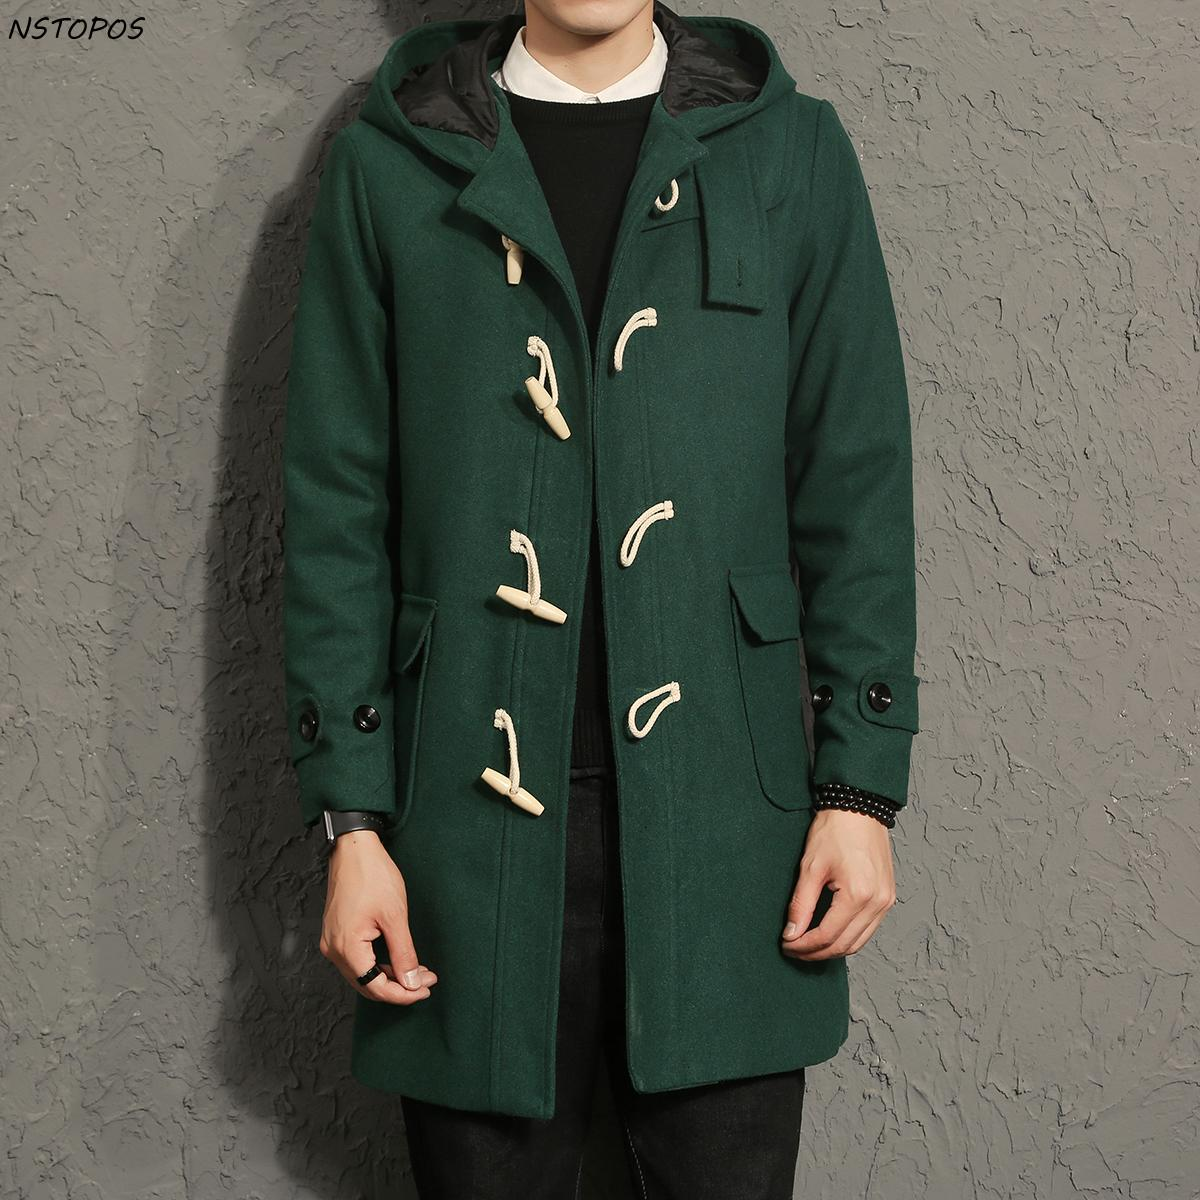 b7bf132e839 2019 Wholesale Horn Button Men S Long Trench Coats 2017 Autumn Winter Men  Hoodie Trench Coat Male Trench Coat Winter Black Green Big Size 5xl From  Kennethy